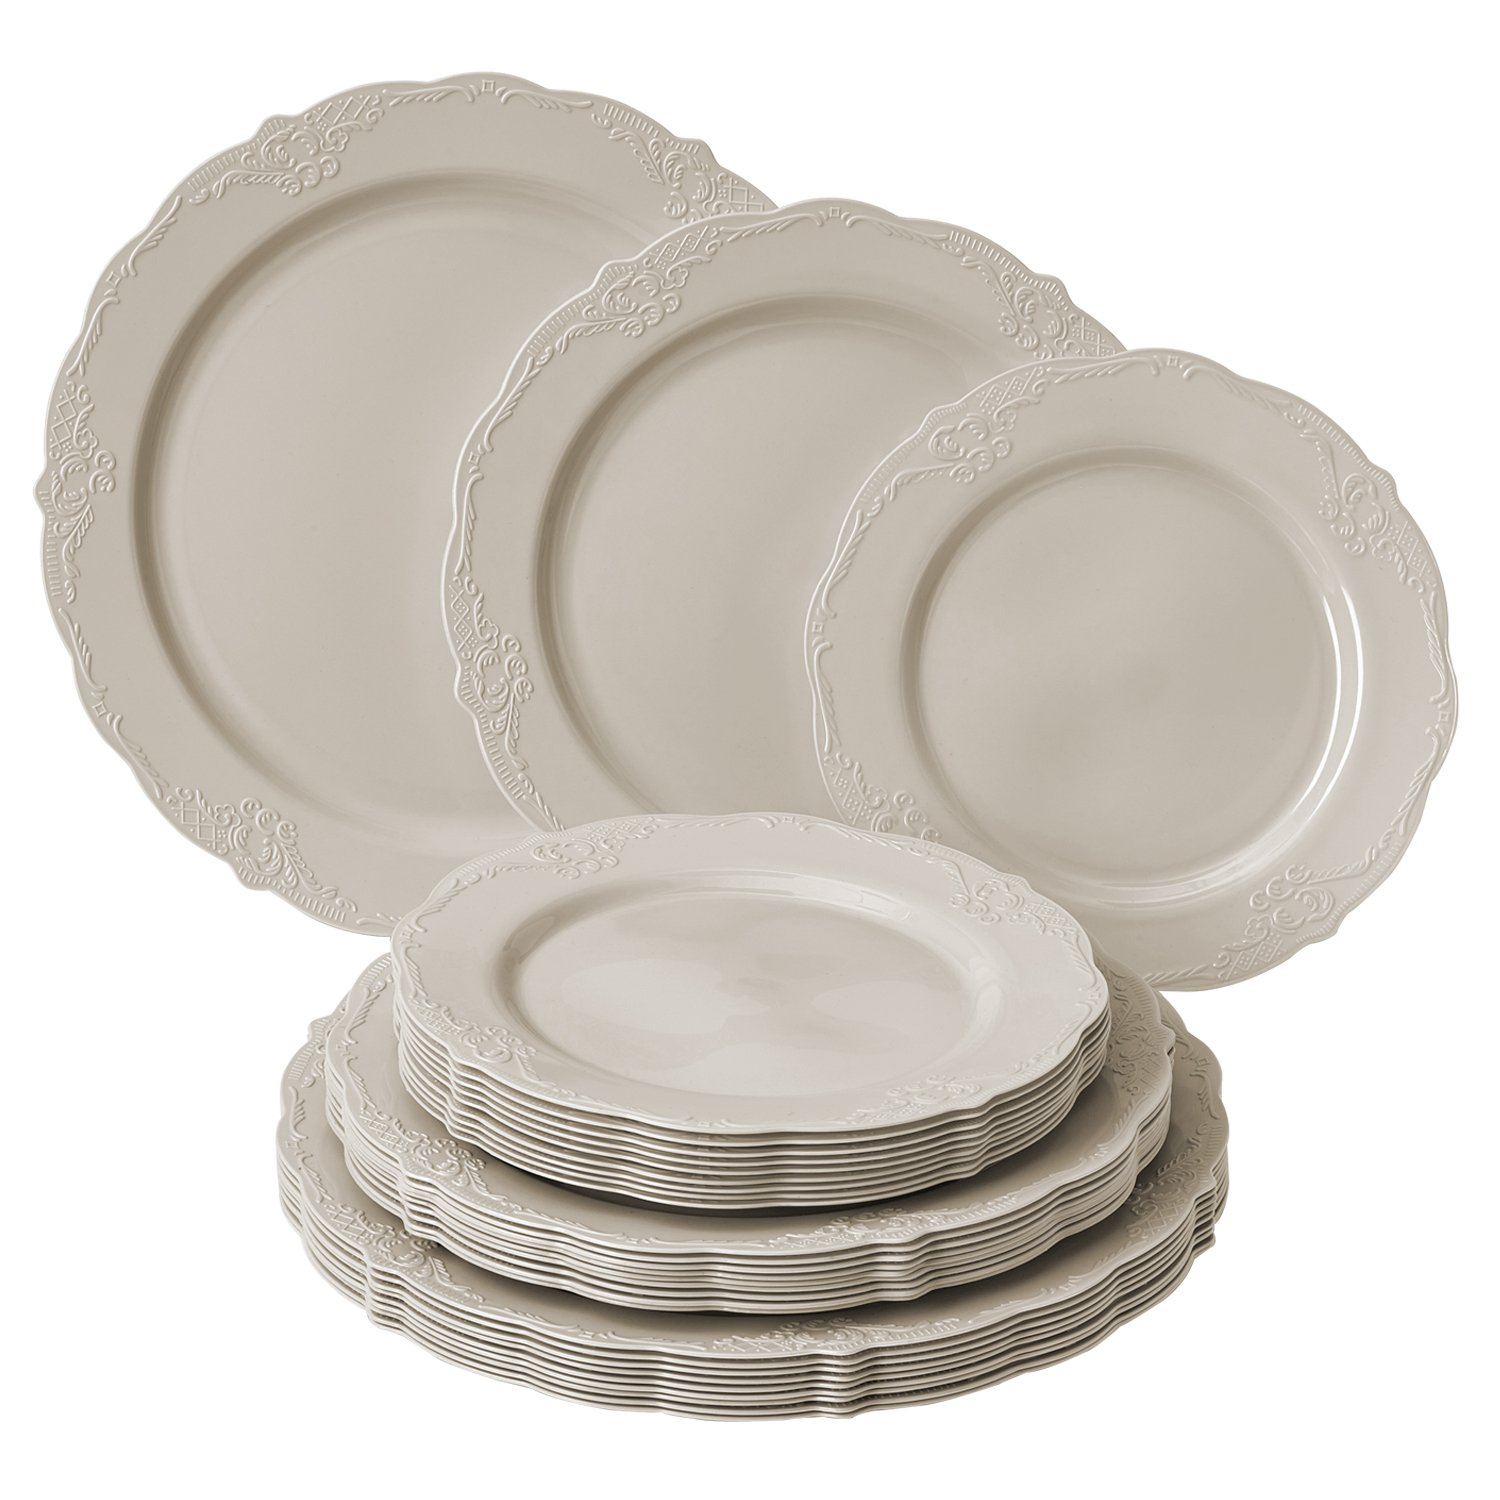 Party Disposable 30pc Dinnerware Set | 10 Dinner Plates | 10 Salad Plates | 10 Dessert Plates | Heavyweight Plastic Dishes | Fine China Look | Upscale Wedding and Dining (Vintage Collection - Cream)